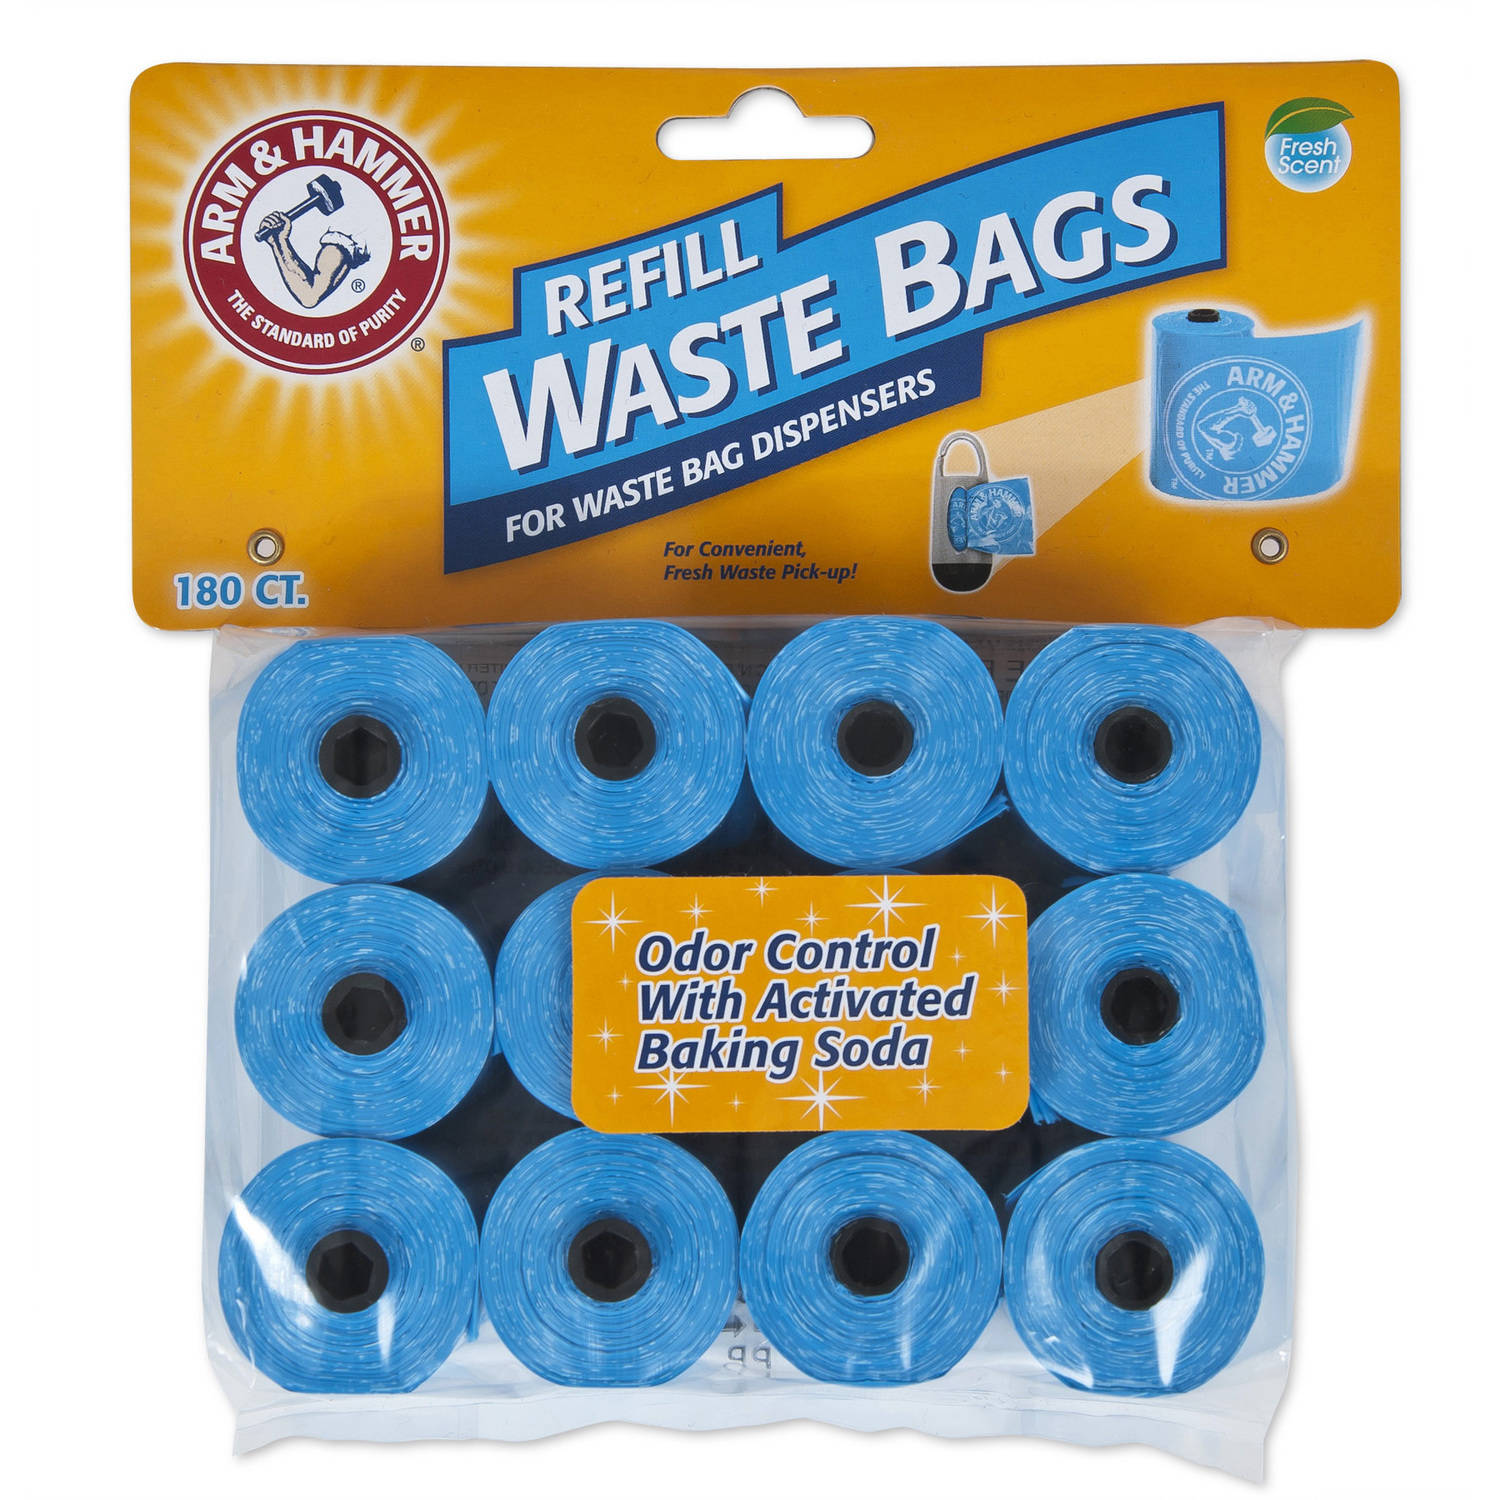 ARM & HAMMER Disposable Waste Bag Refills, Pack of 180